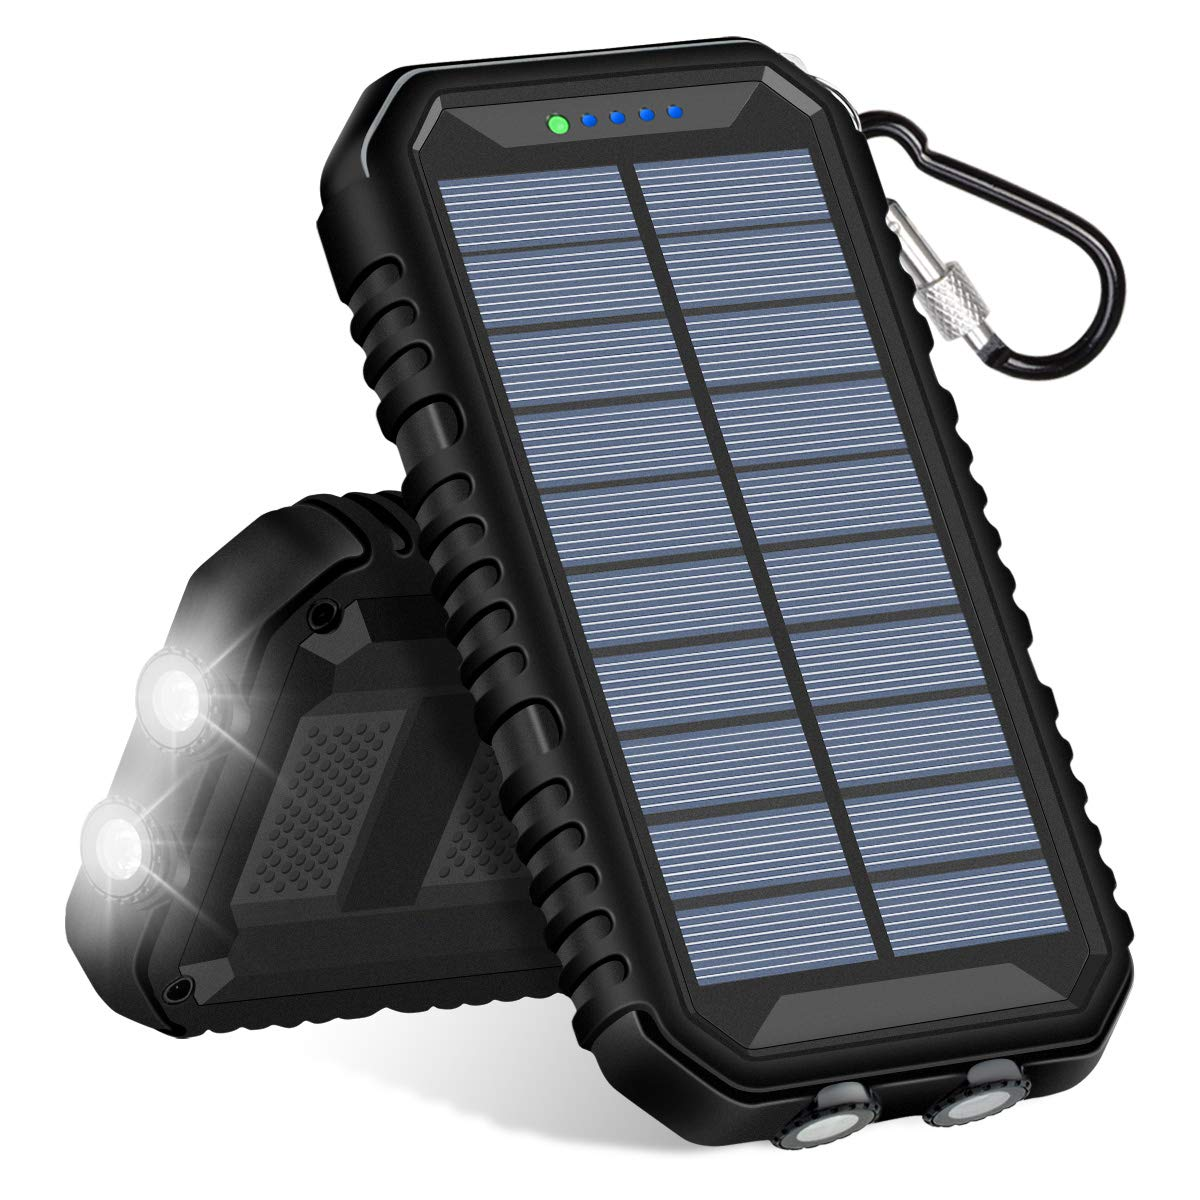 Solar Charger 15000mAh, SOARAISE Portable Power Bank with 2.4A Outputs Waterproof Phone Charger for Smart Phones and Outdoor Camping